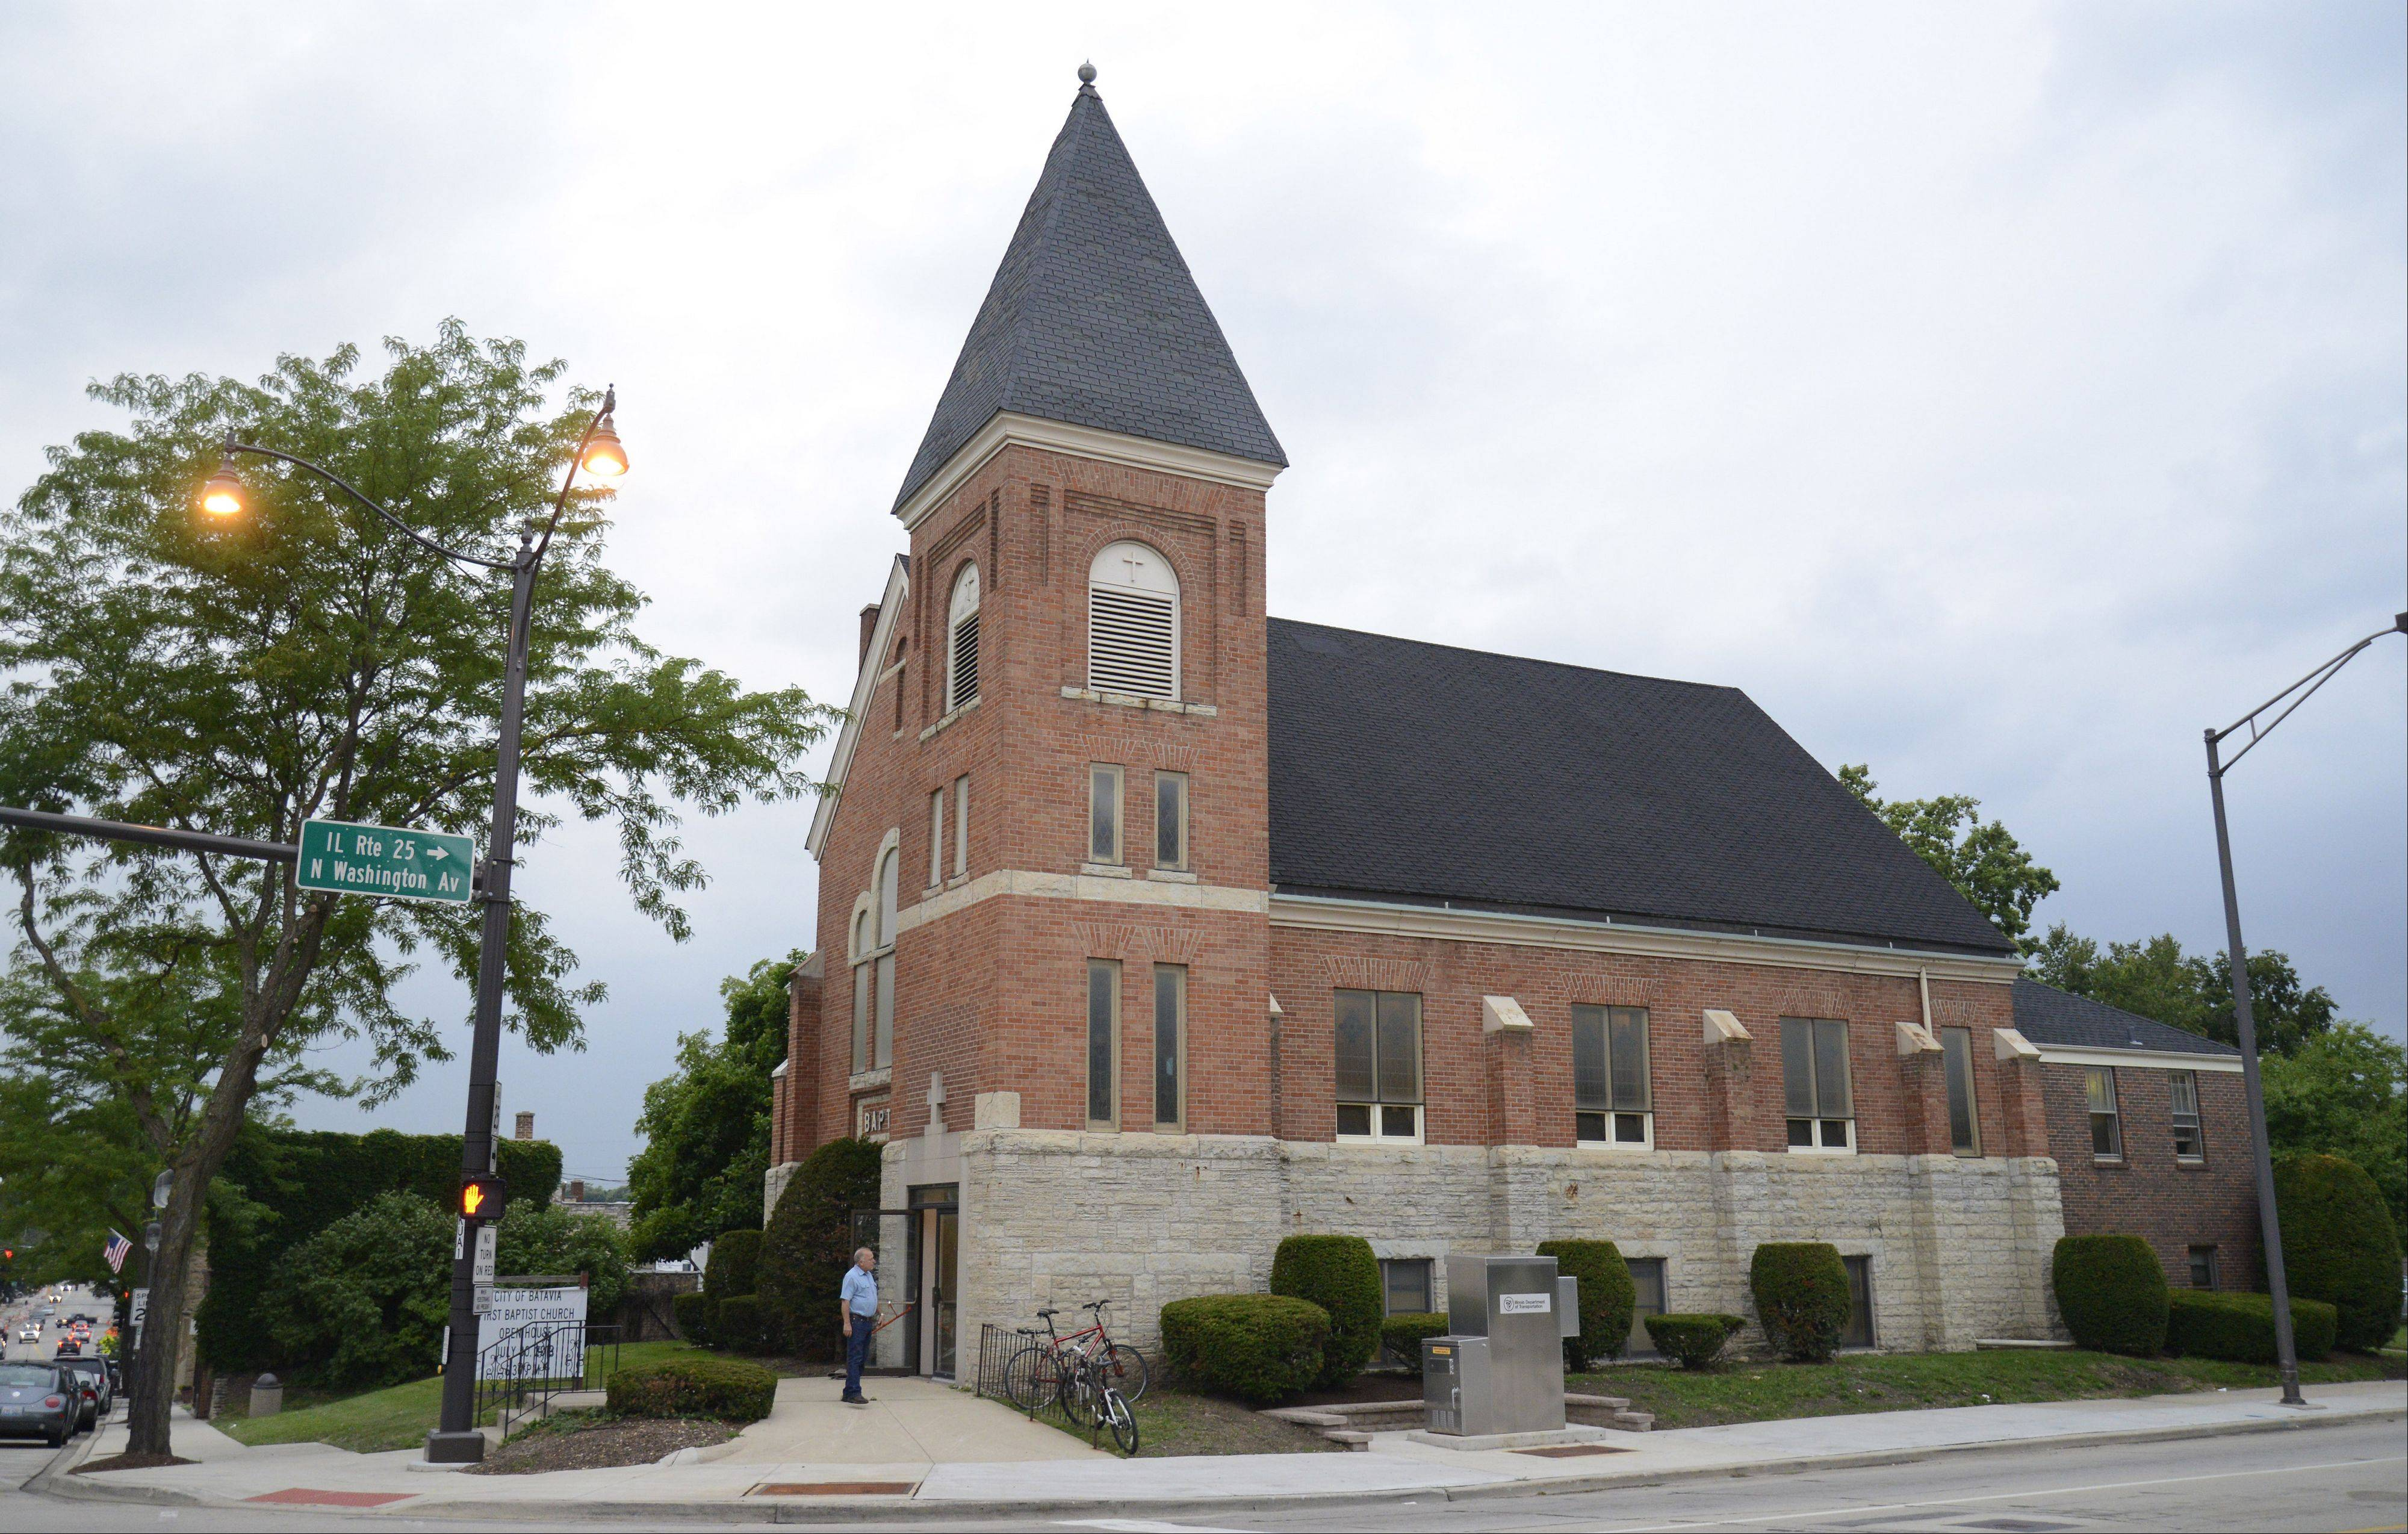 Batavia leans to allowing demolition of First Baptist building